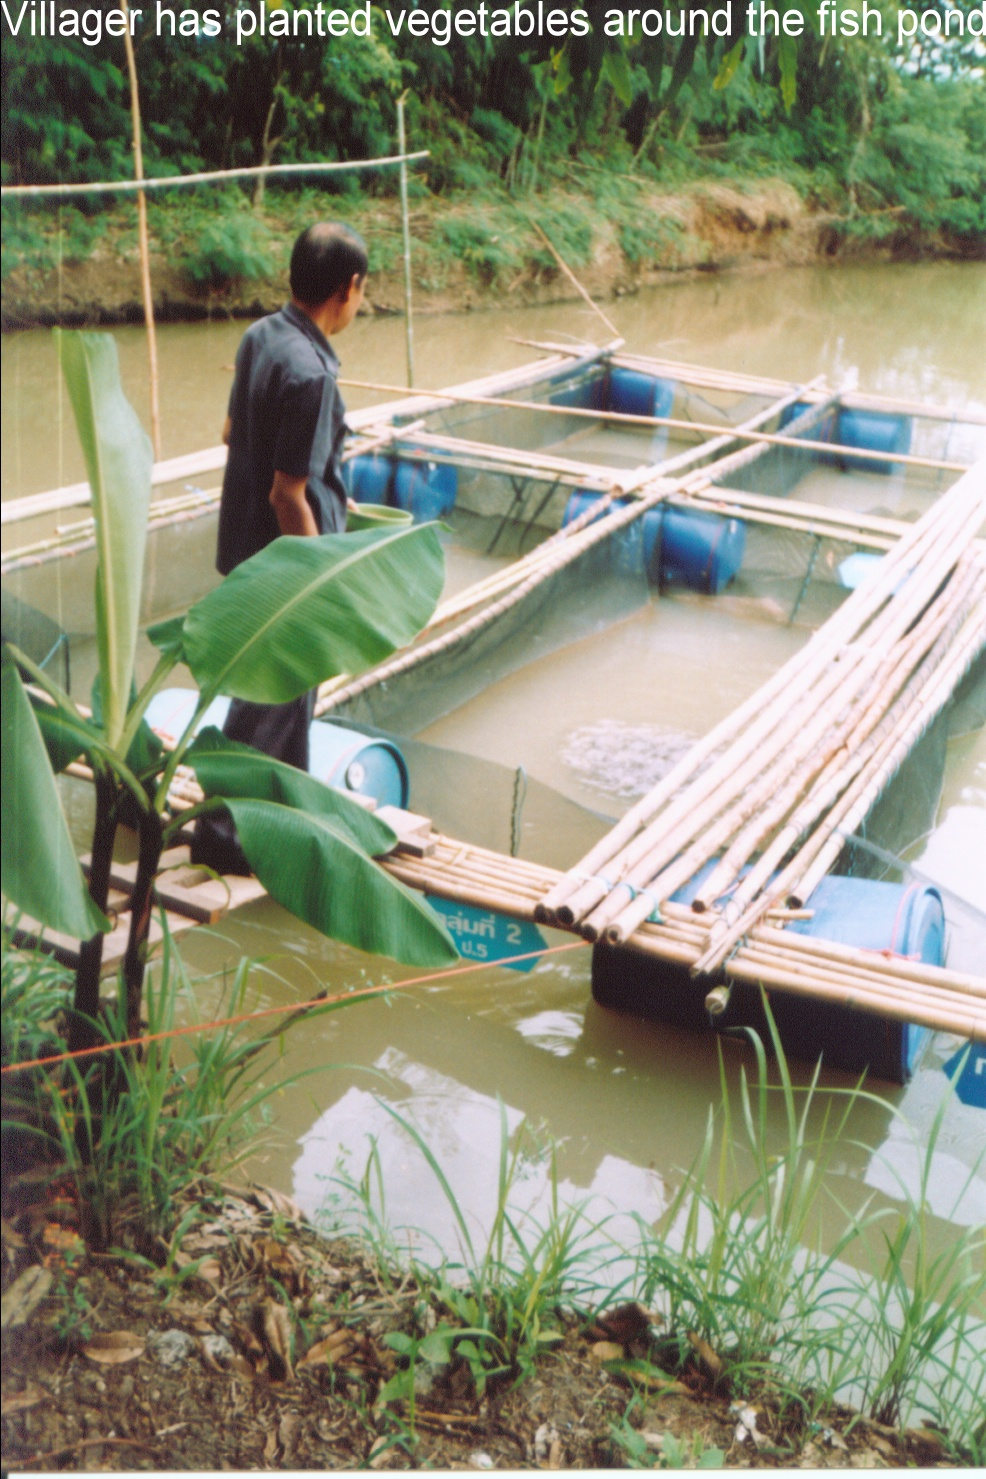 At this Thai fish farm, fish are raised in floating baskets and vegetables are planted around the ponds, providing improved food security for families. Photo from World Vision Australia